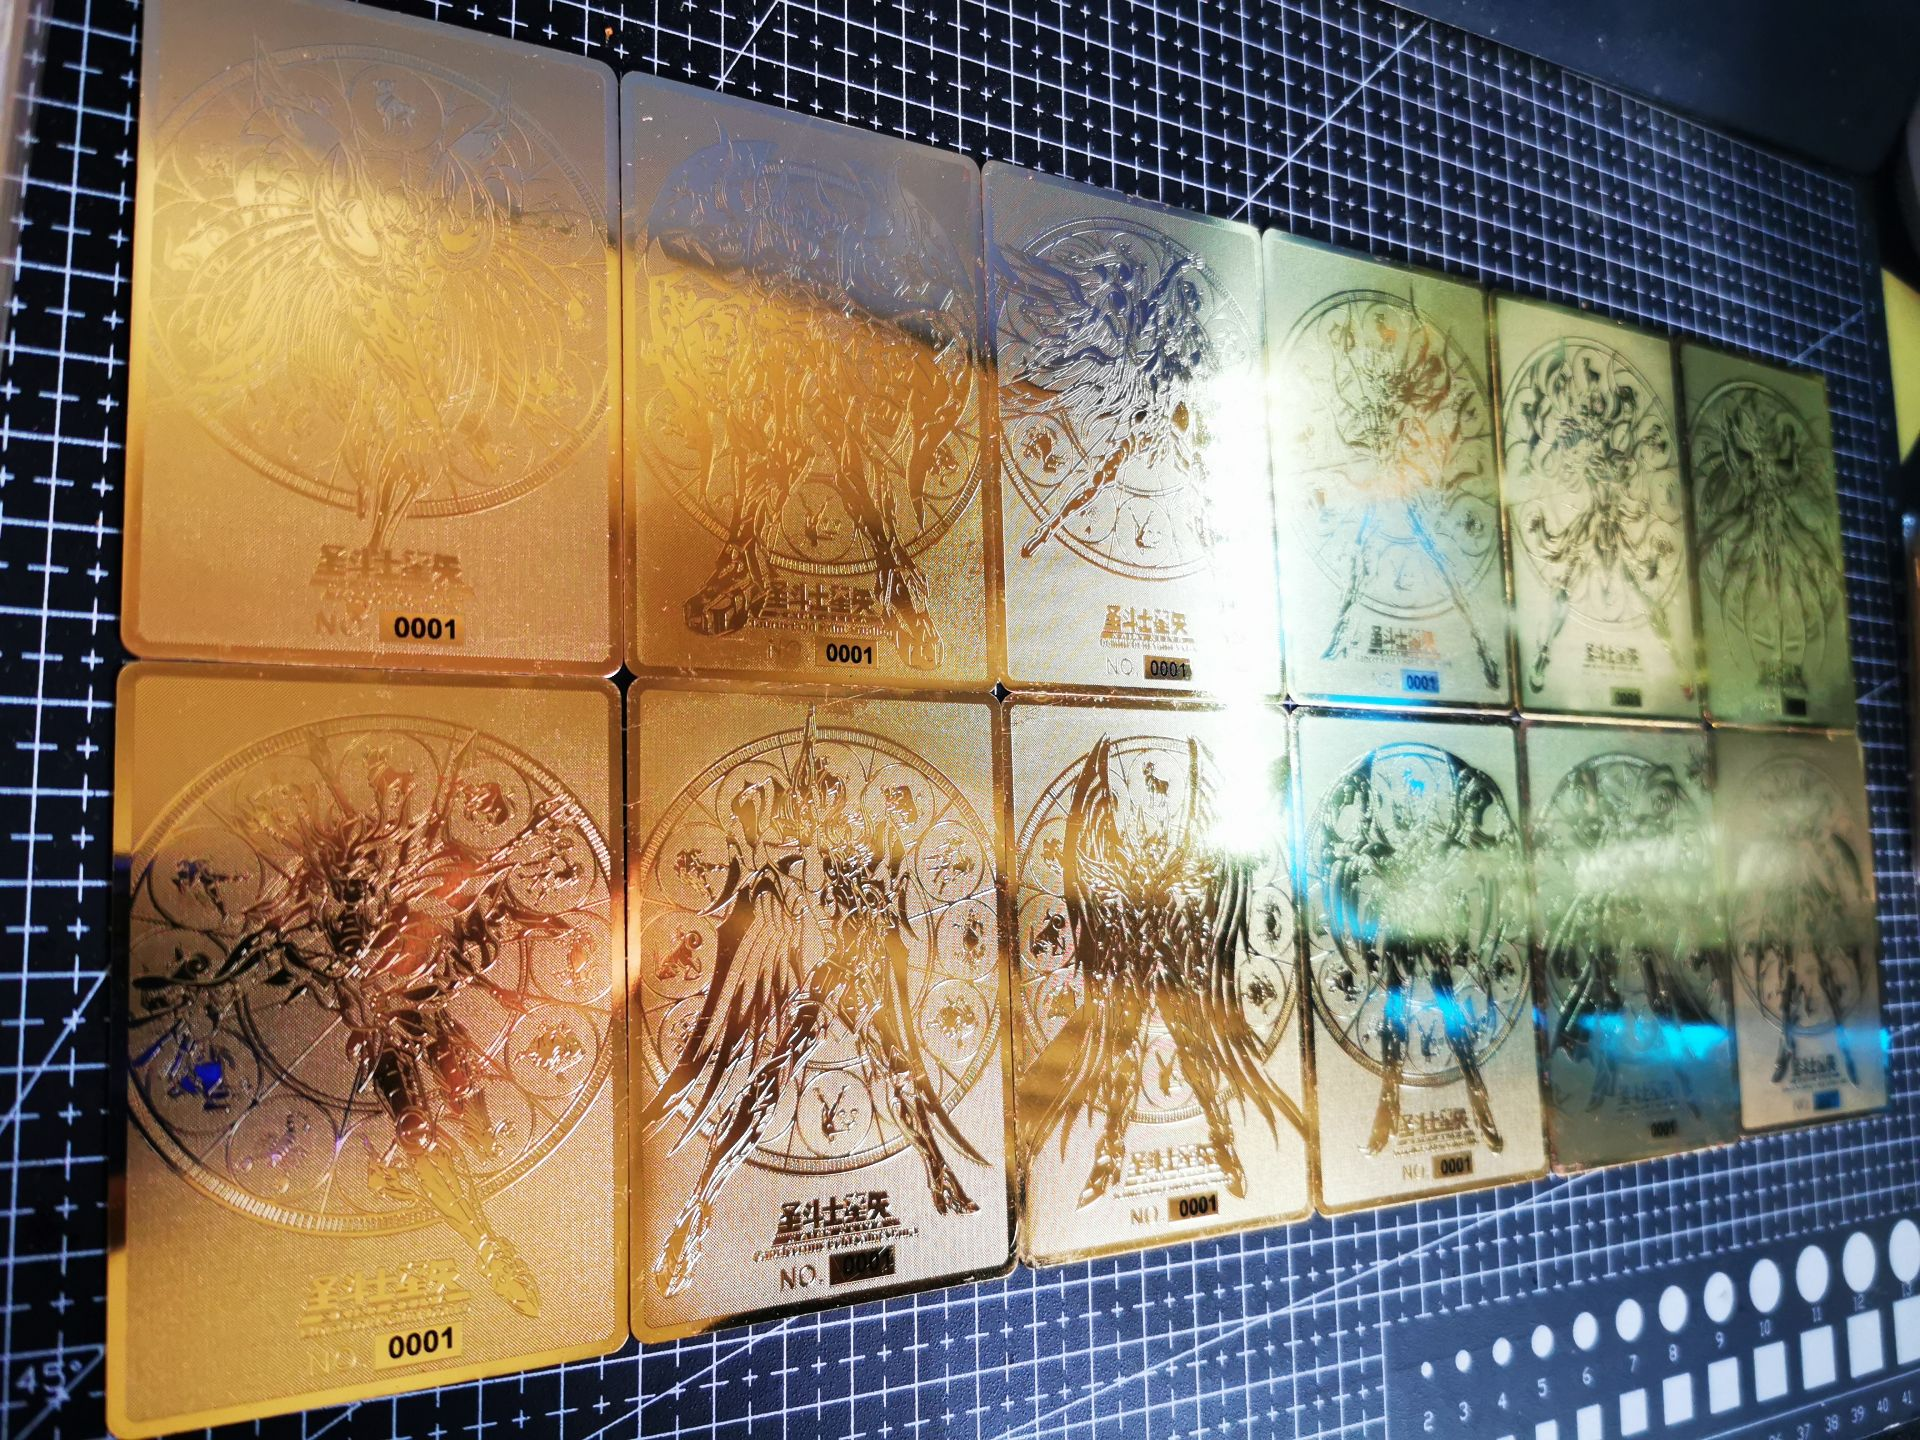 12pcs/set Saint Seiya Gold Soul Metal  The Signs Of The Zodiac Toys Hobbies Hobby Collectibles Game Collection Anime Cards